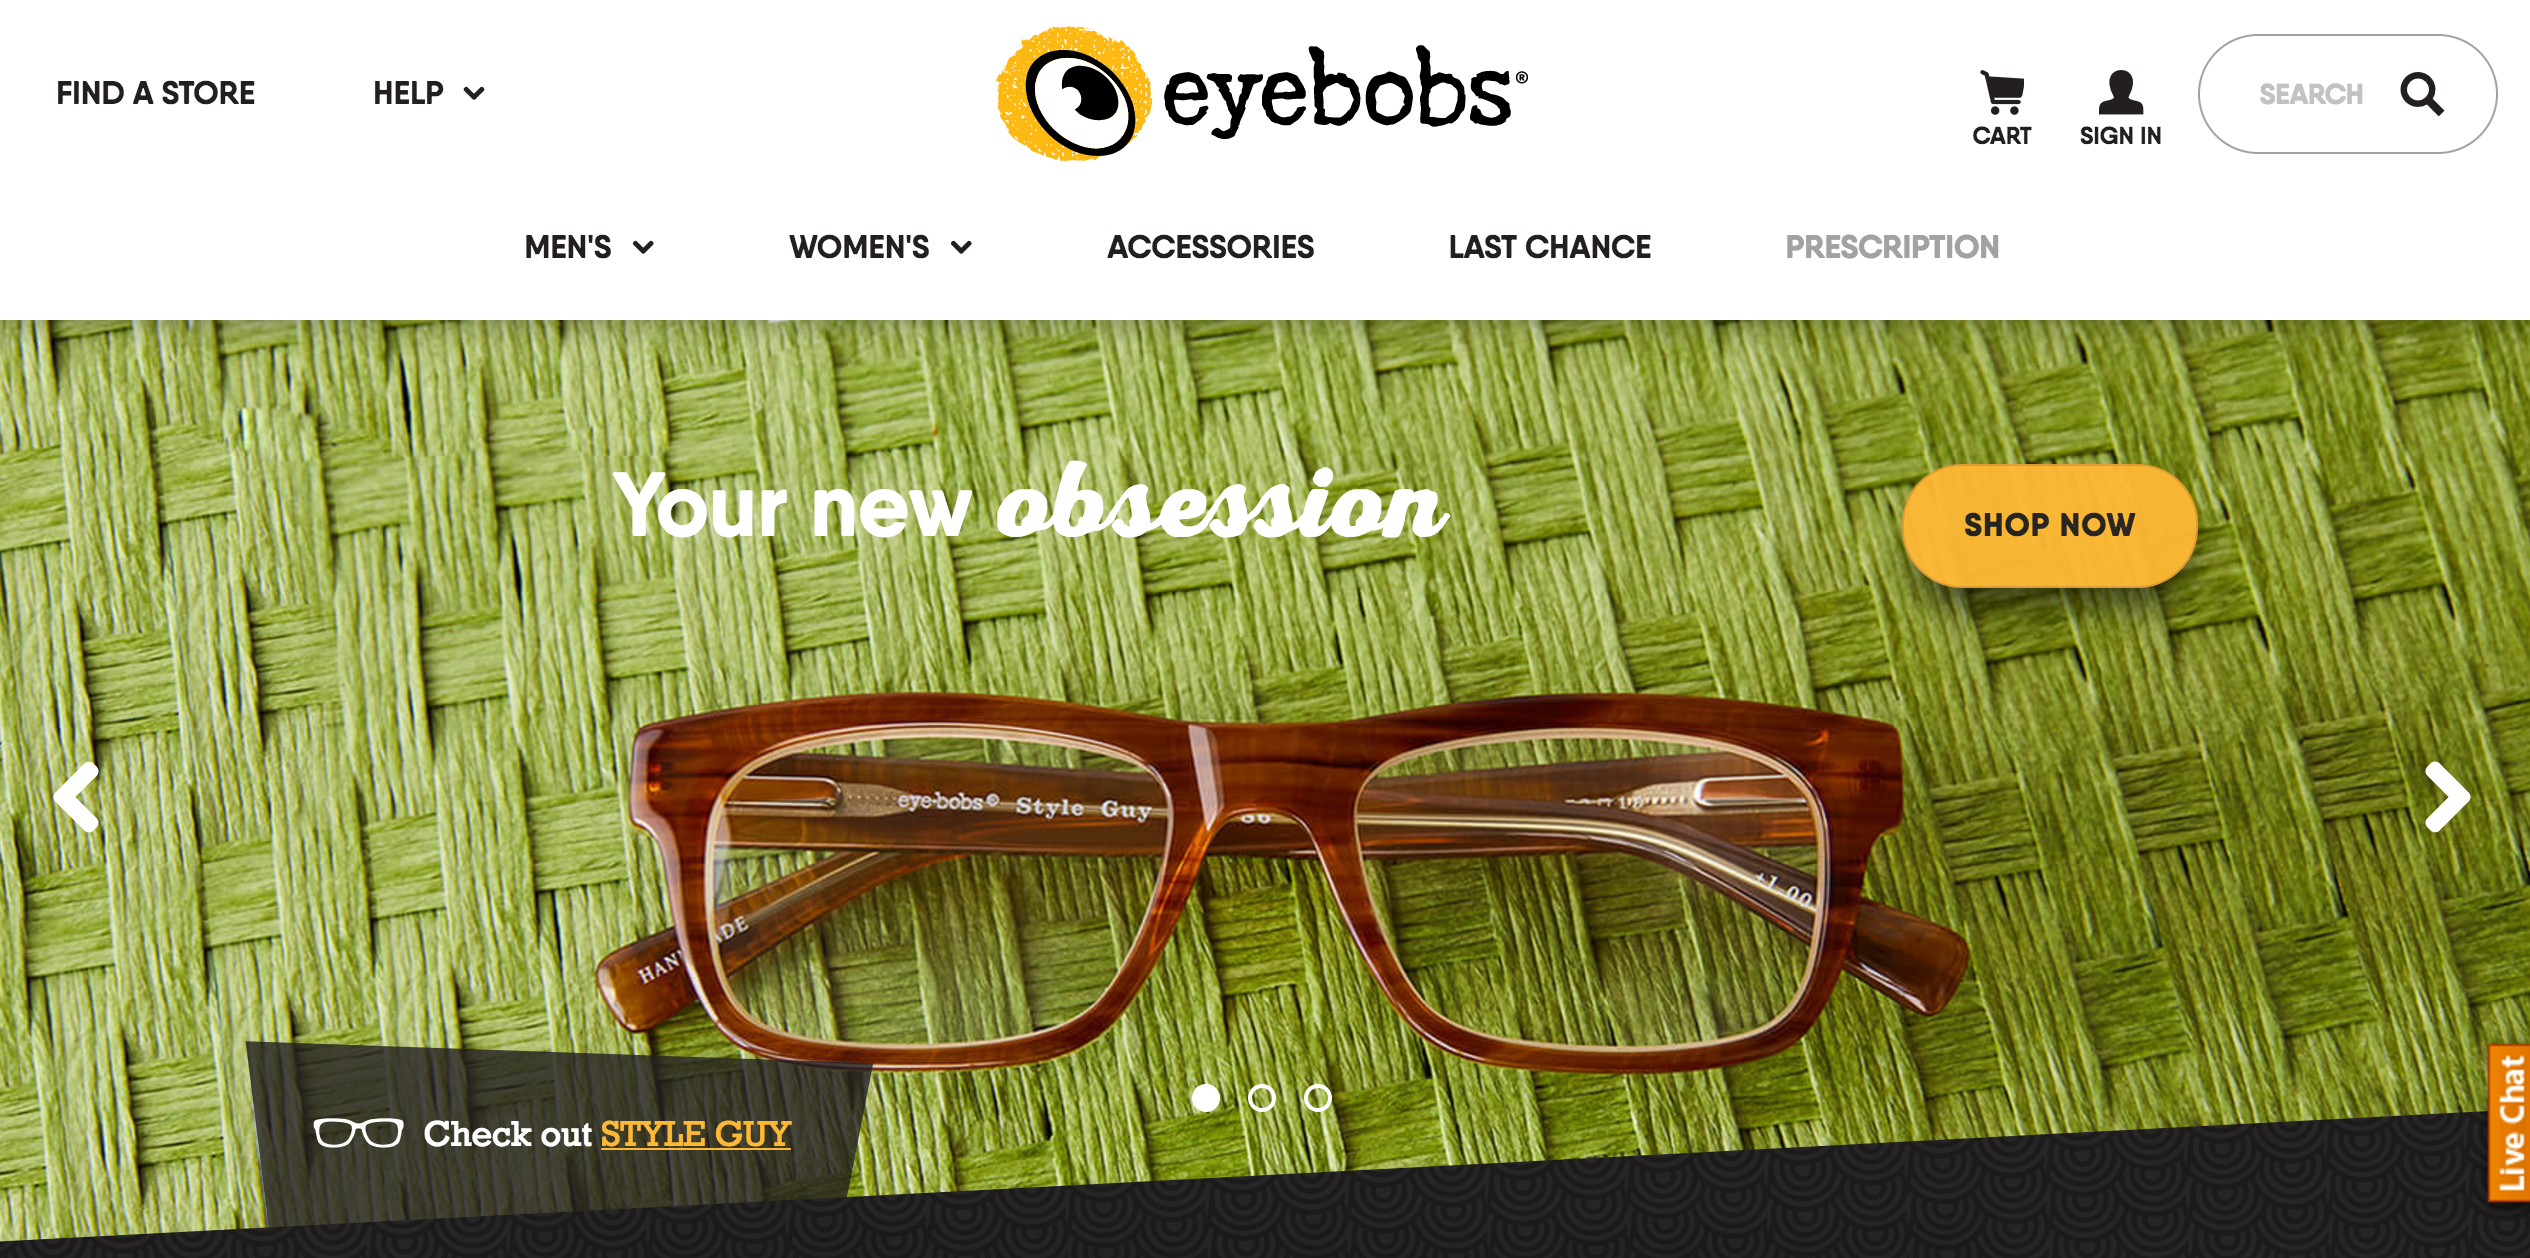 image of eyebobs homepage